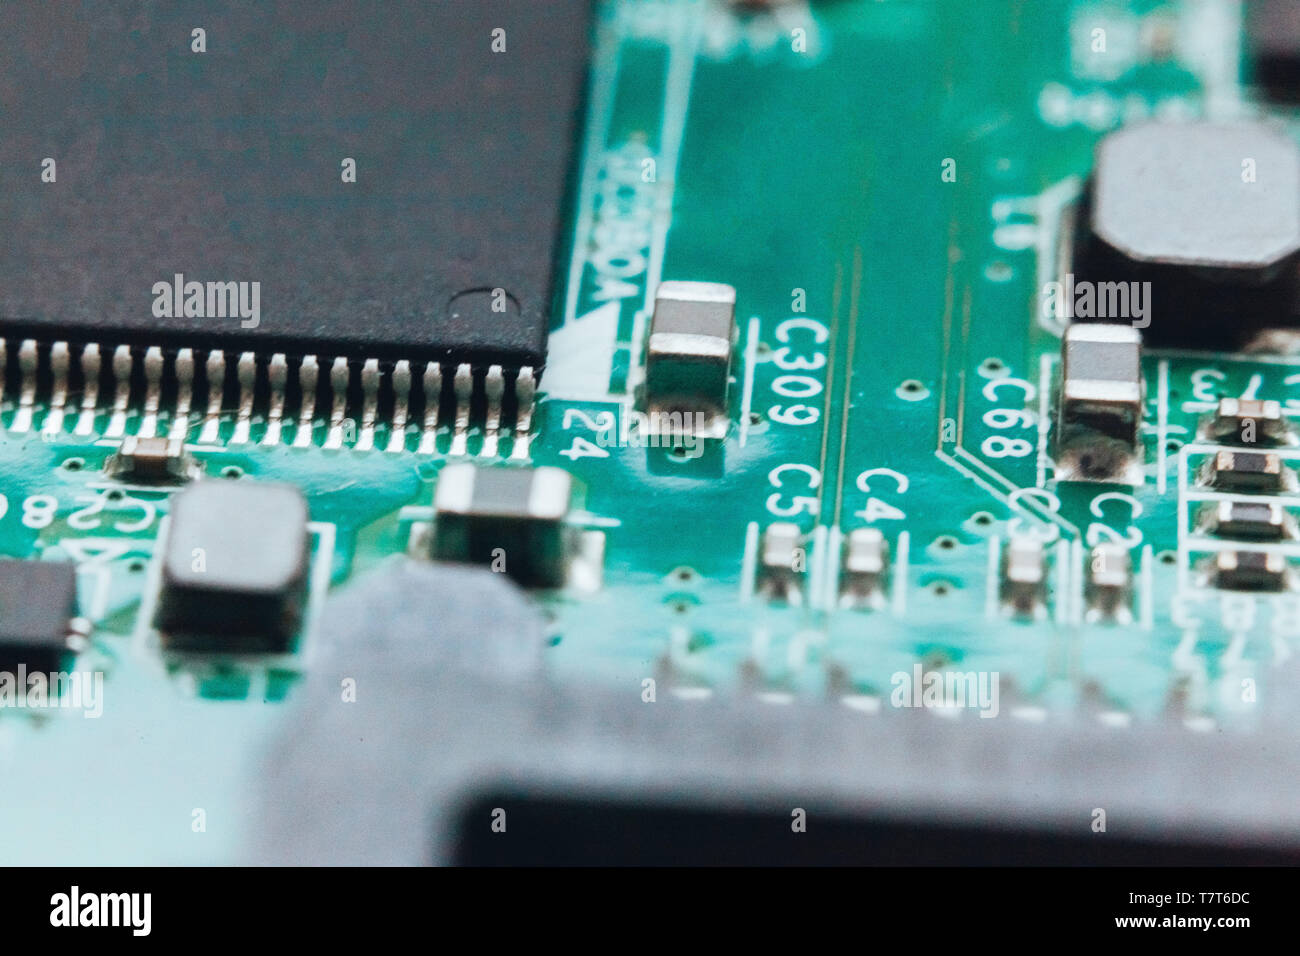 Circuit Card Repair Stock Photos & Circuit Card Repair Stock Images